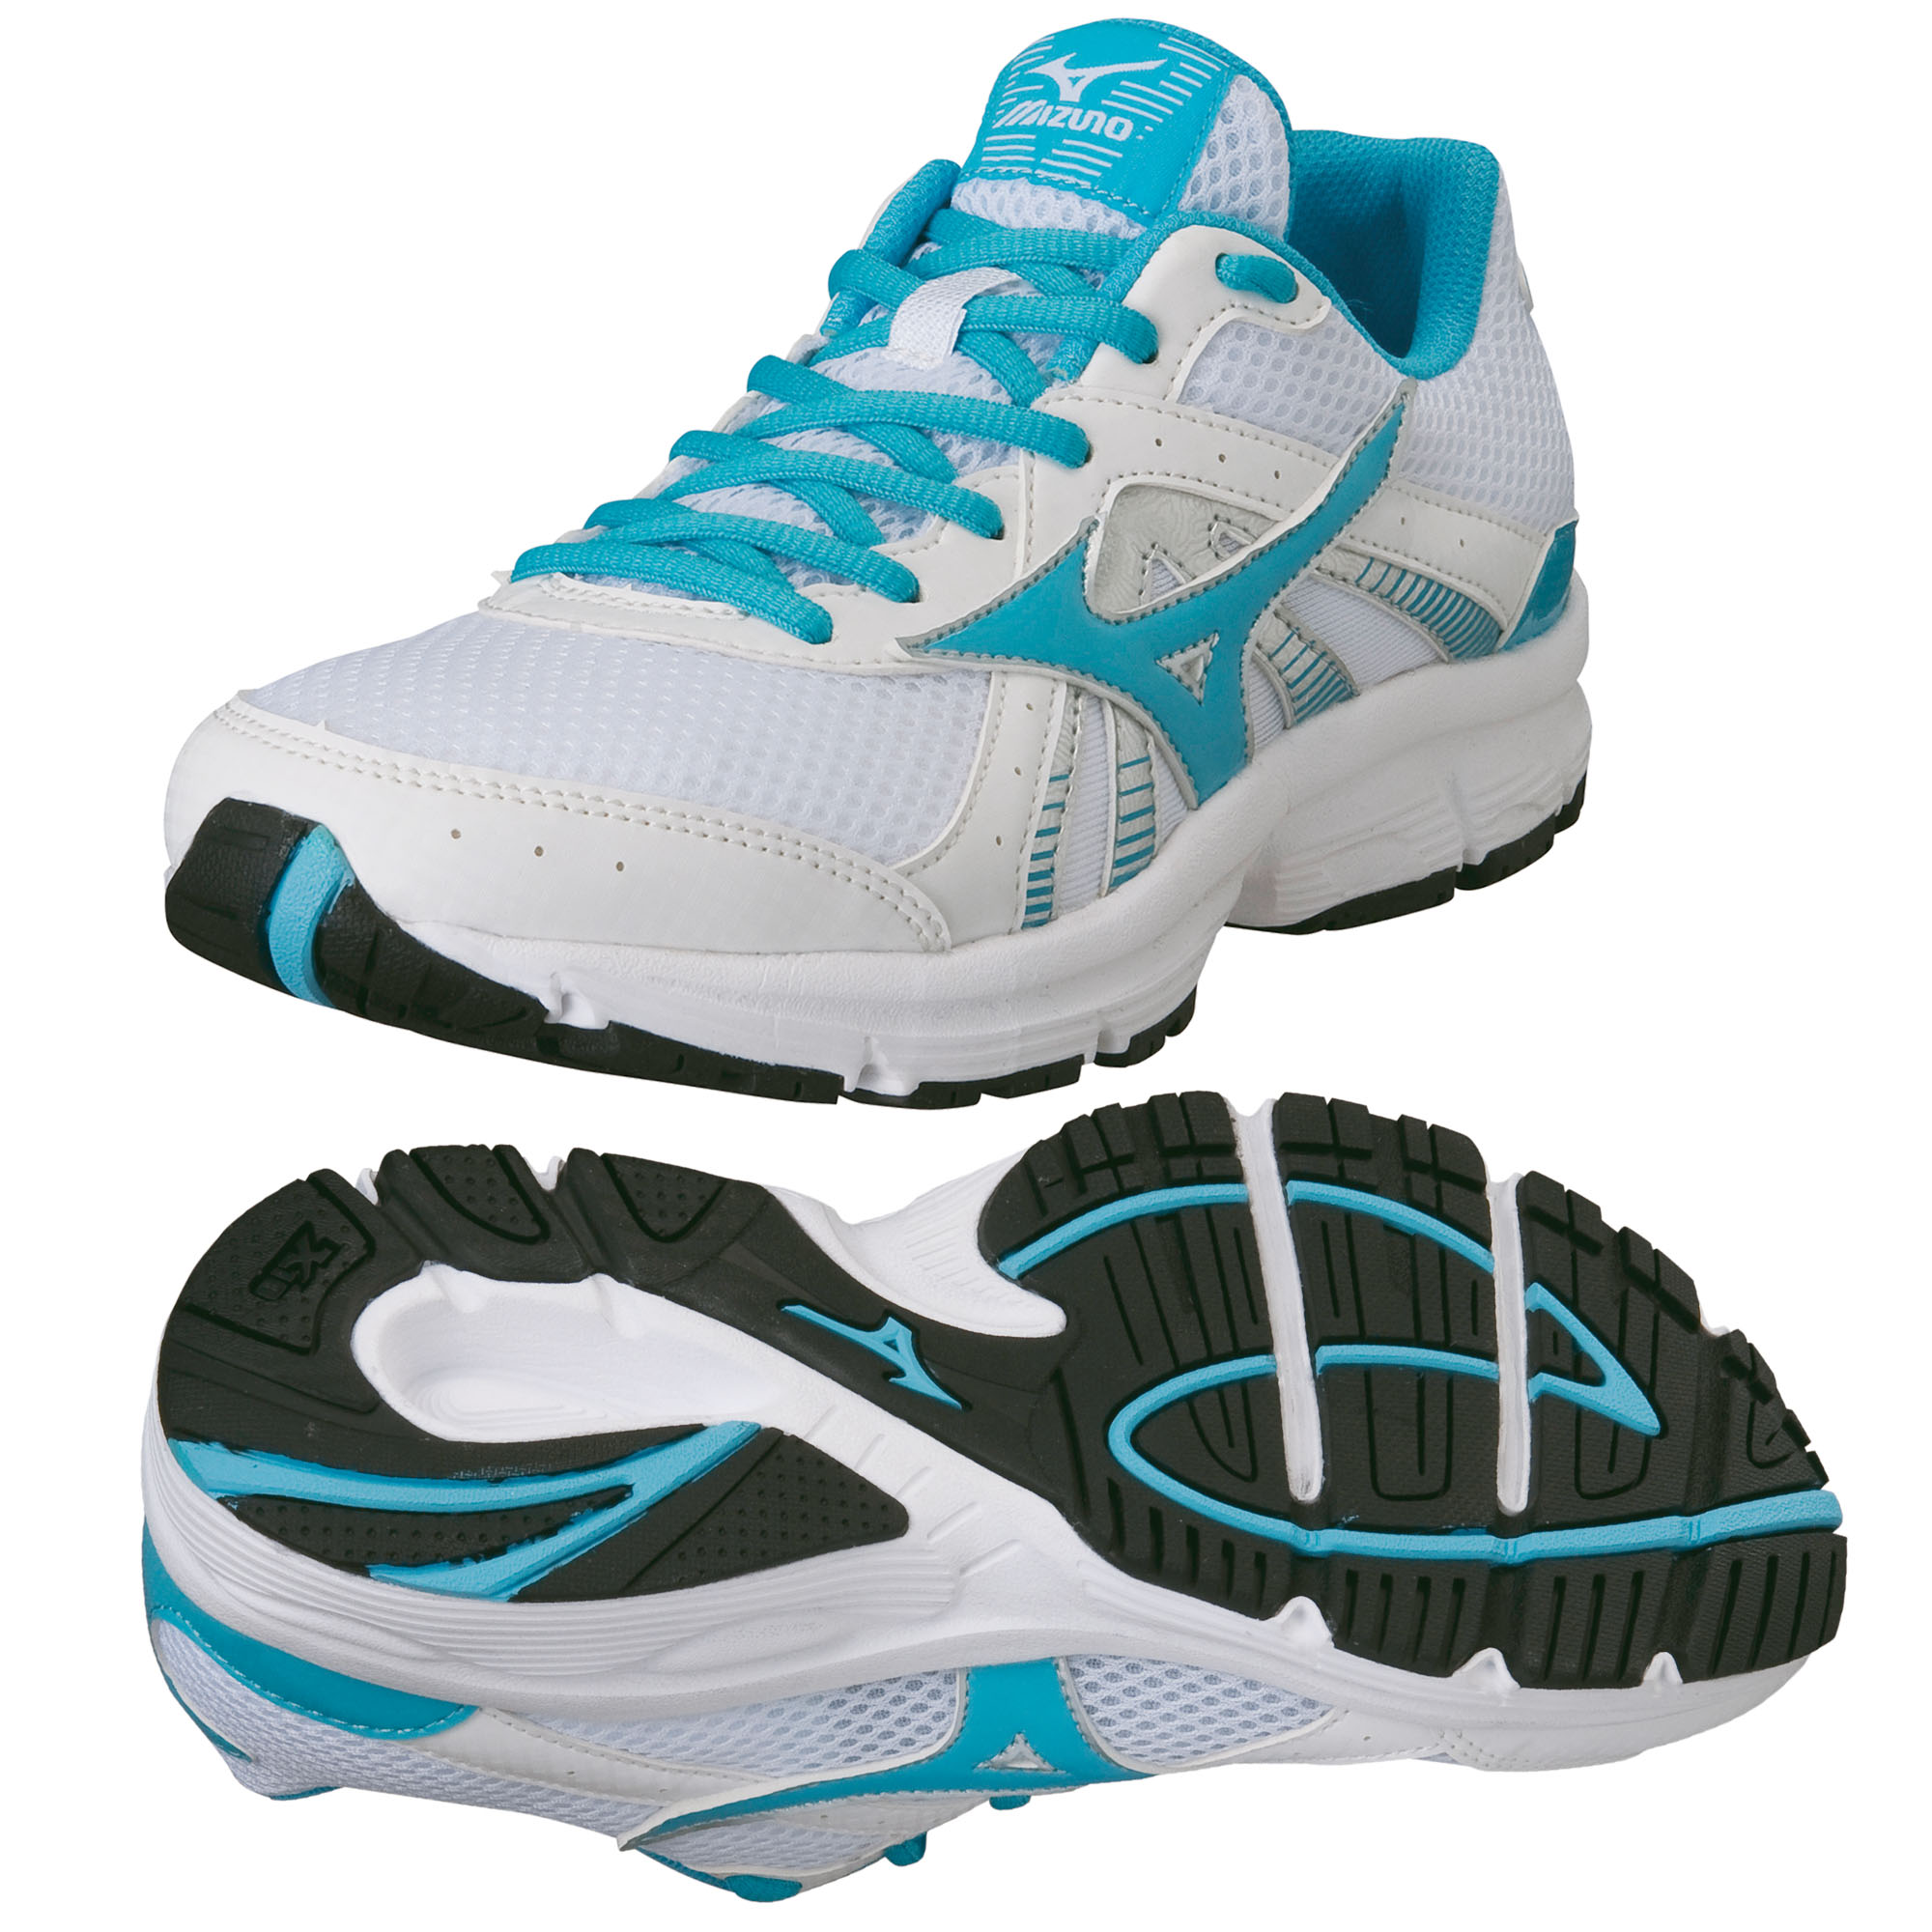 Mizuno Crusader 8 Ladies Running Shoes SS14 - 4 UK